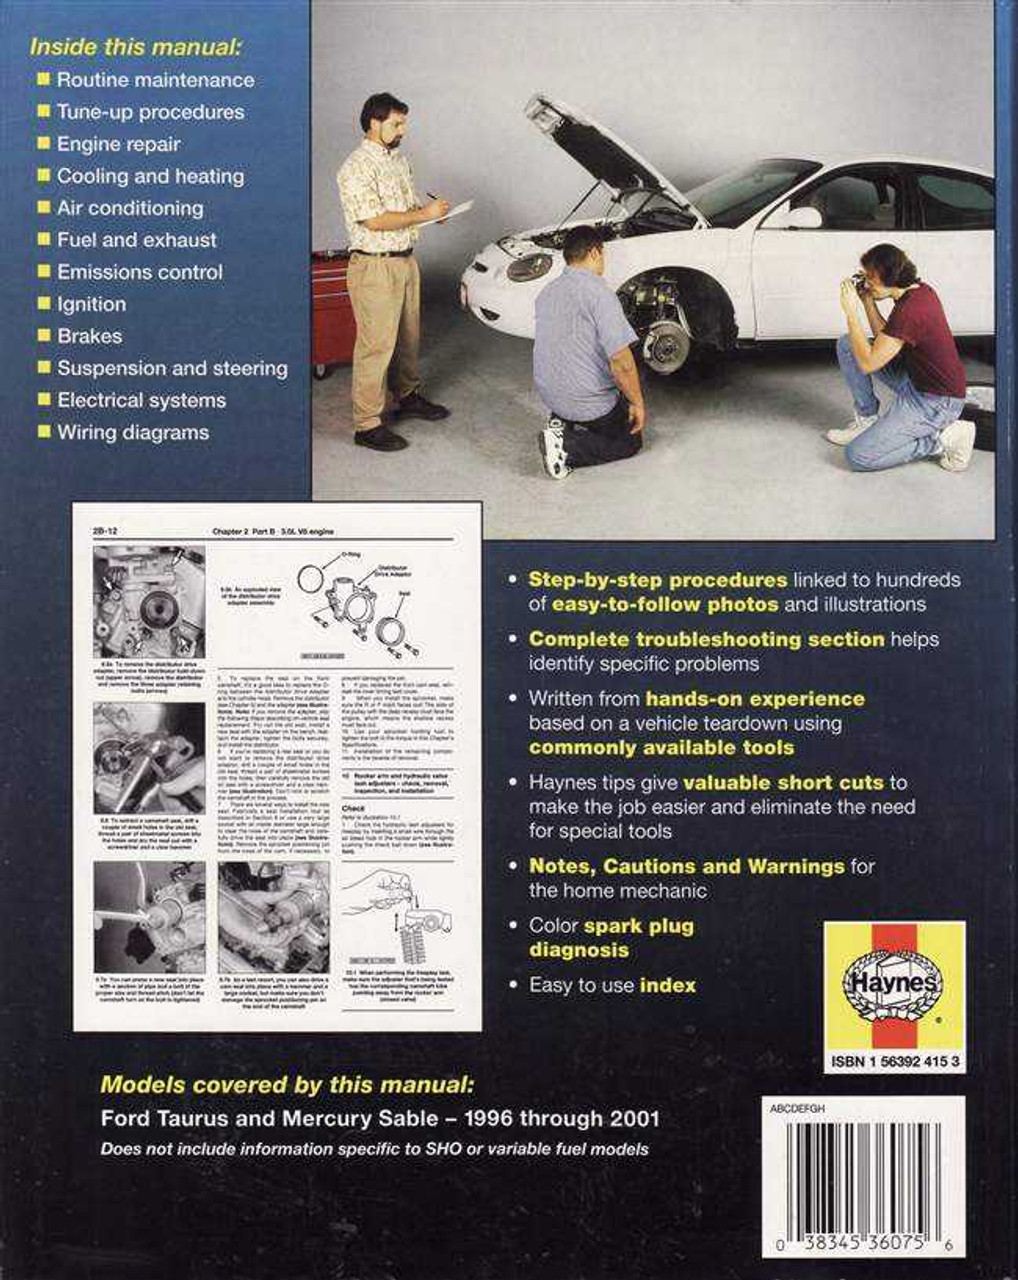 small resolution of ford taurus and mercury sable 1996 2001 workshop manual 96 mercury sable exhaust diagram